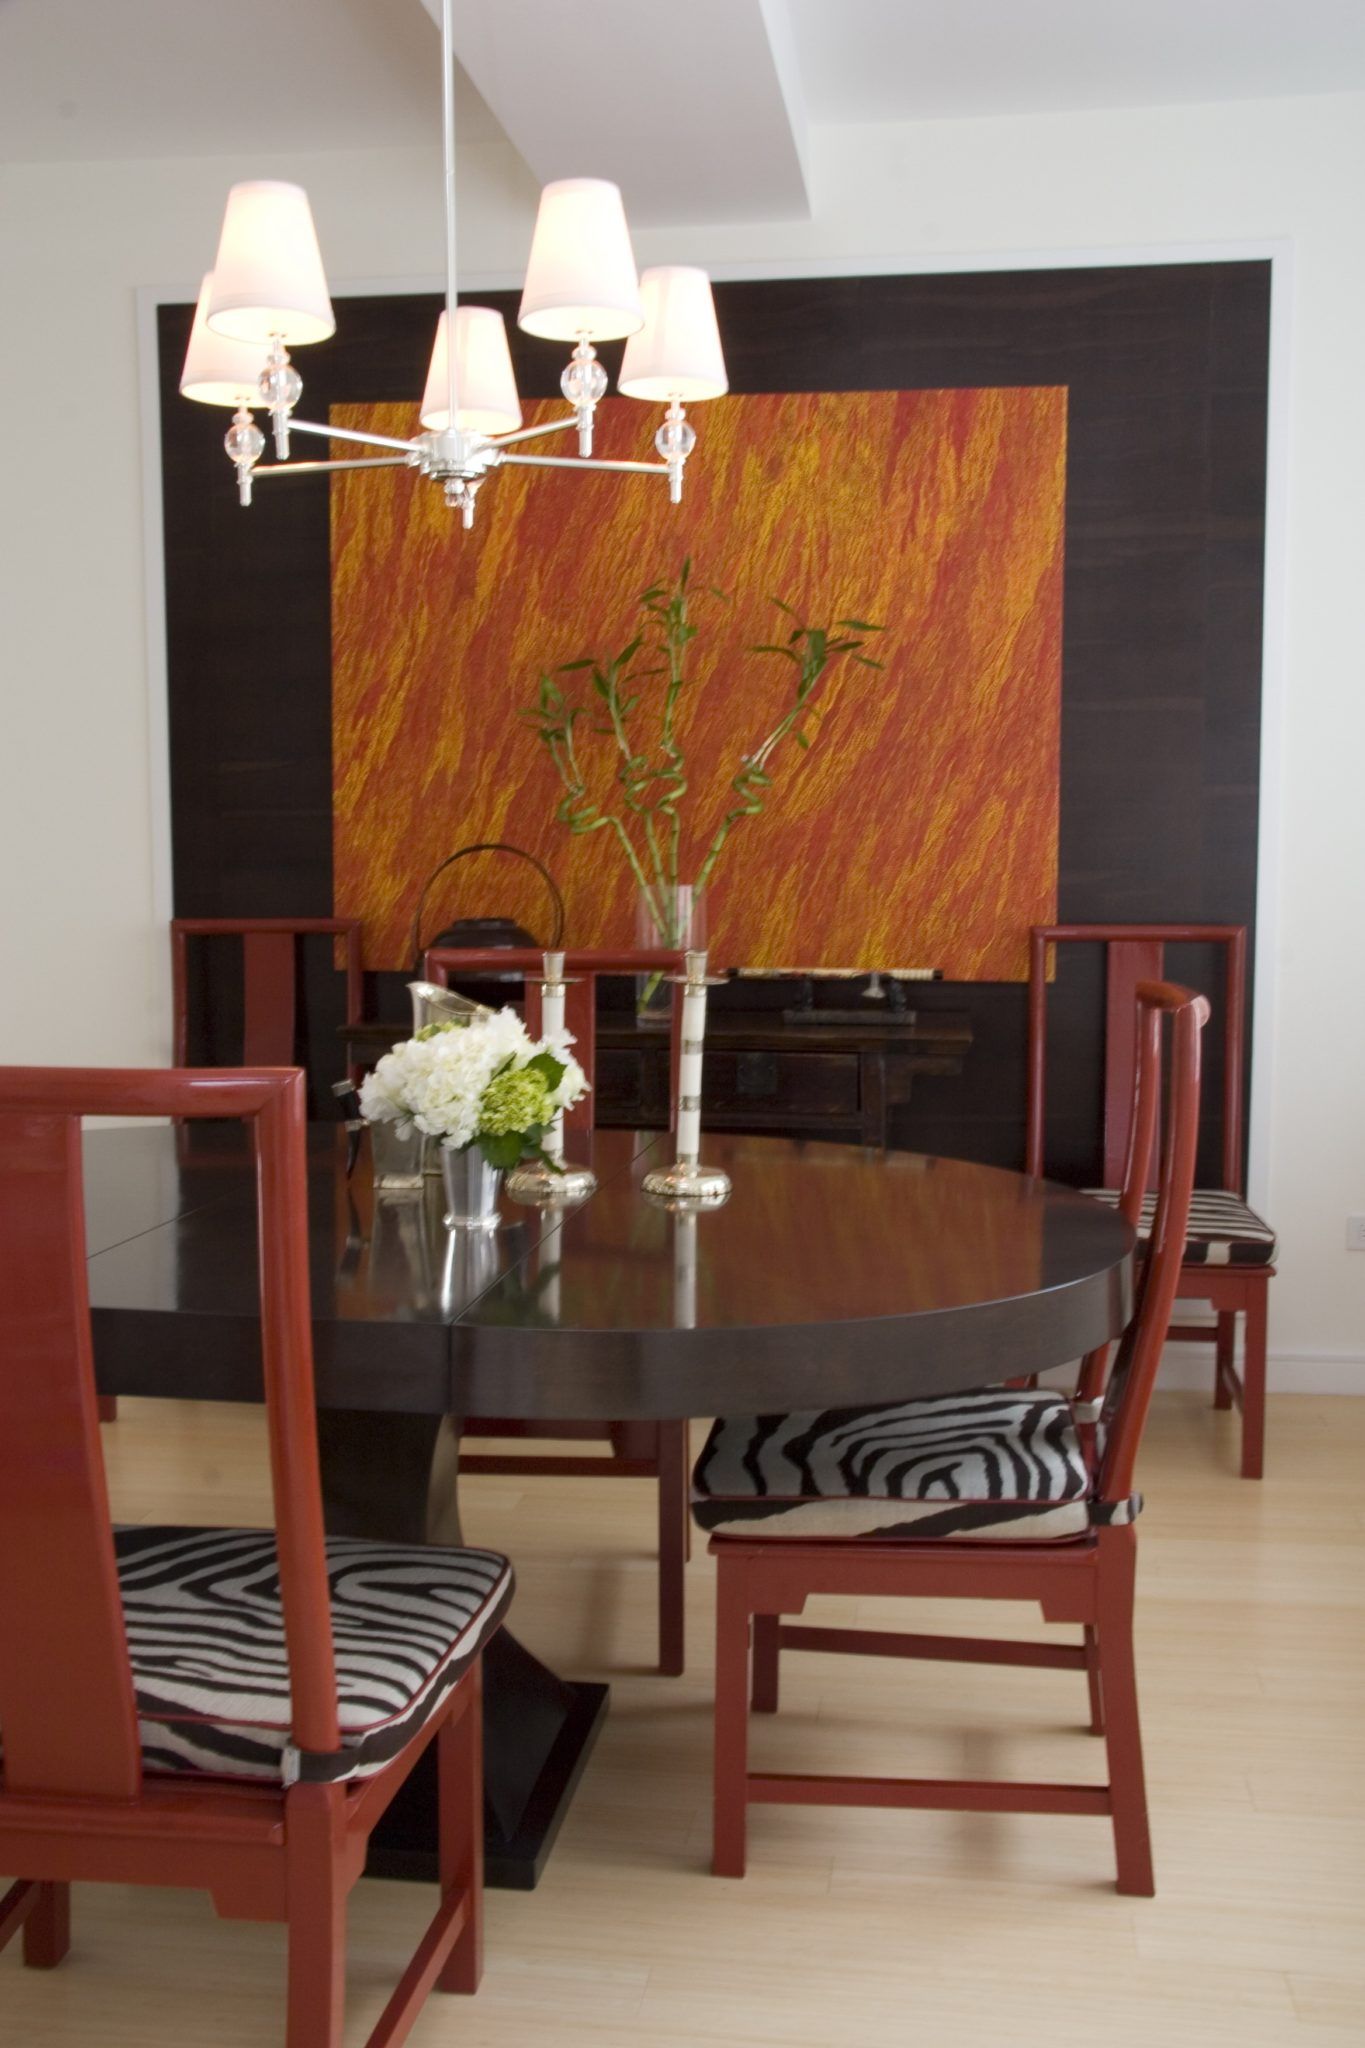 New York City dining room with art as a major feature setting the tone by Rinat Lavi Interiors